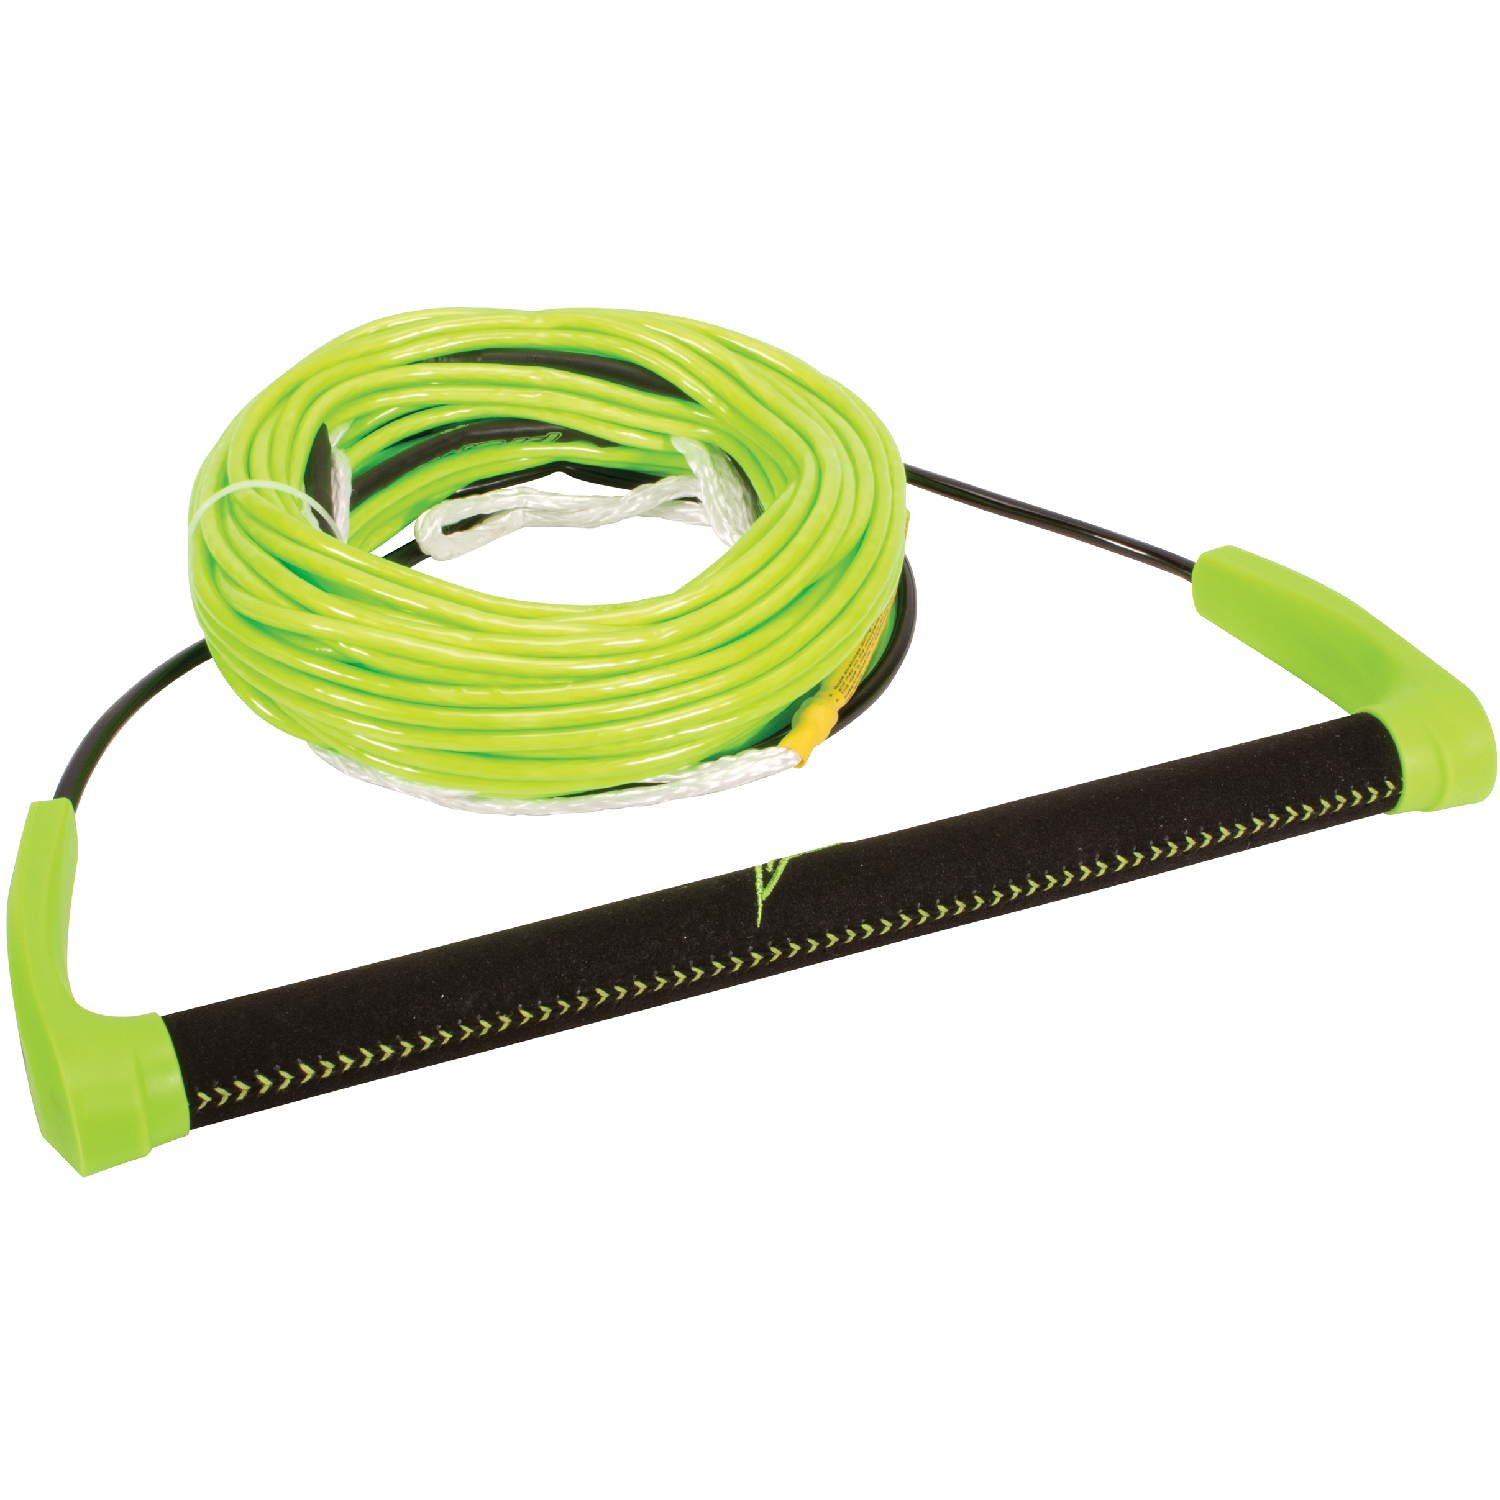 Proline 2018 75' LG Package w  Dyneema Air (Green) Wakeboard Rope & Handle Combo by